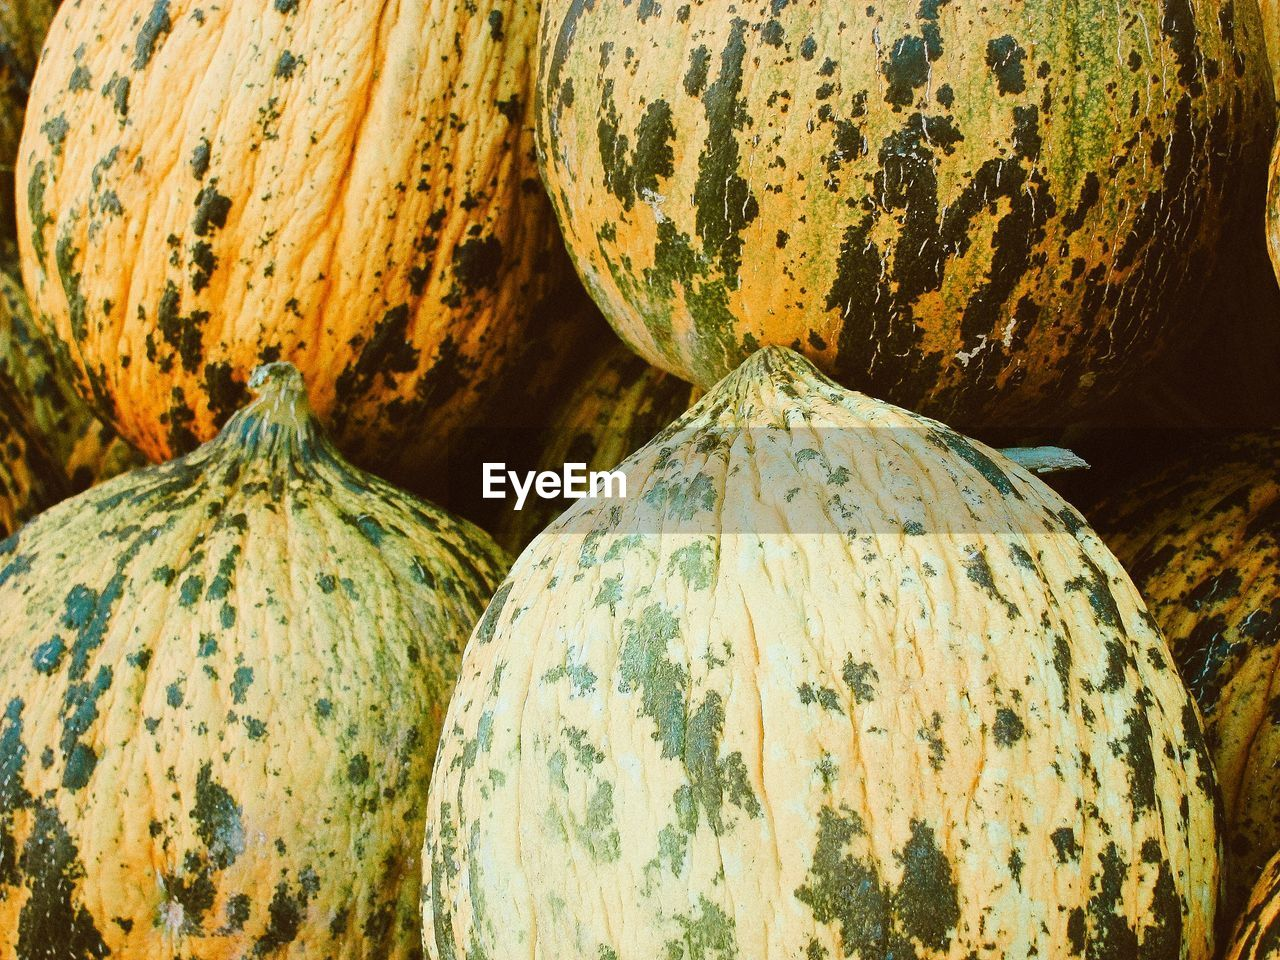 Close-up of pumpkin for sale at market stall